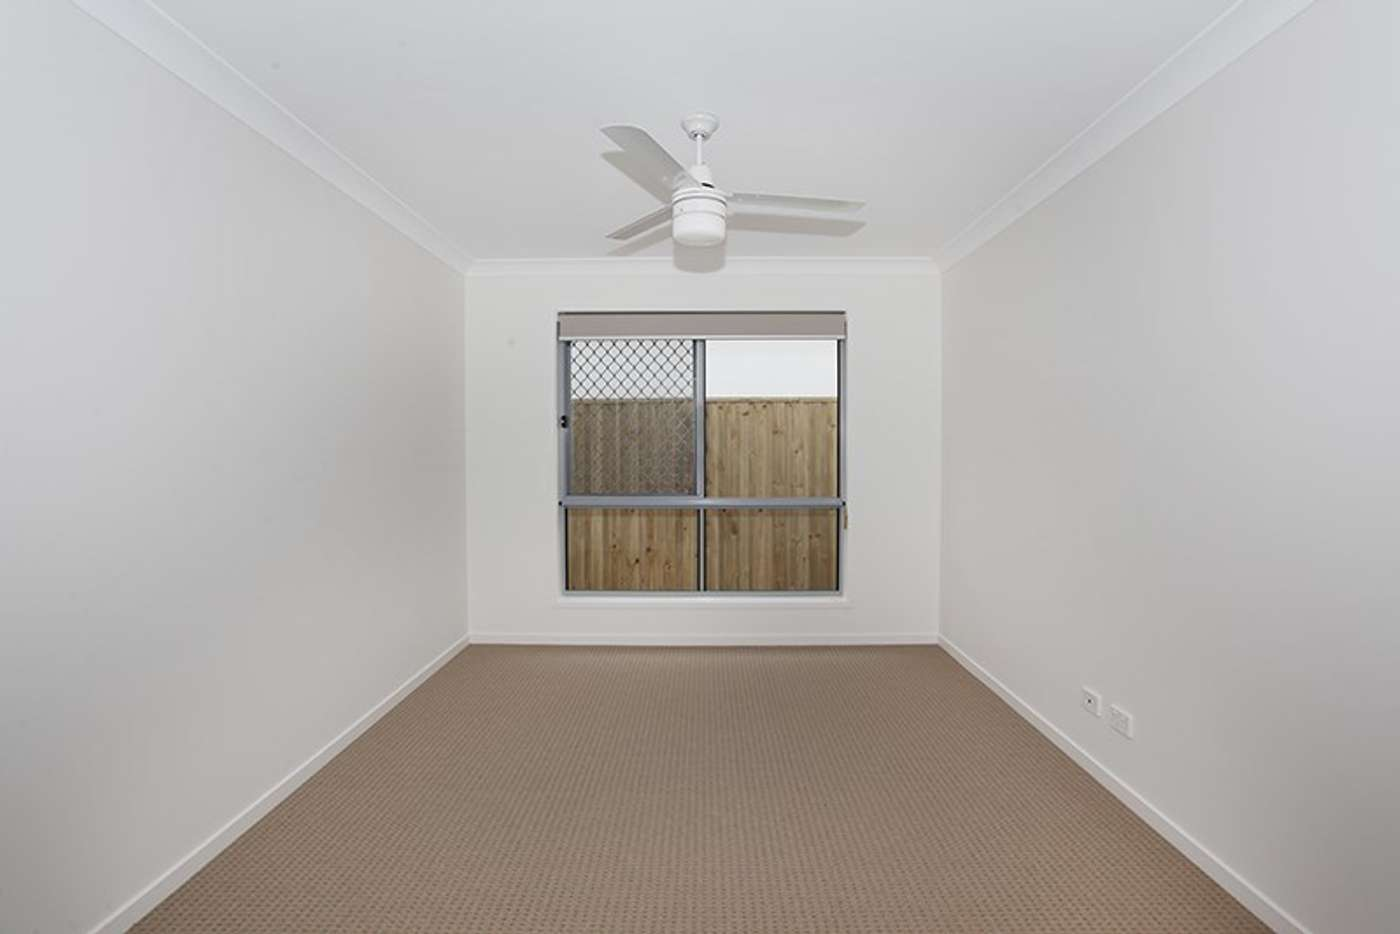 Sixth view of Homely house listing, 171 Old Emu Mountain Road, Peregian Beach QLD 4573